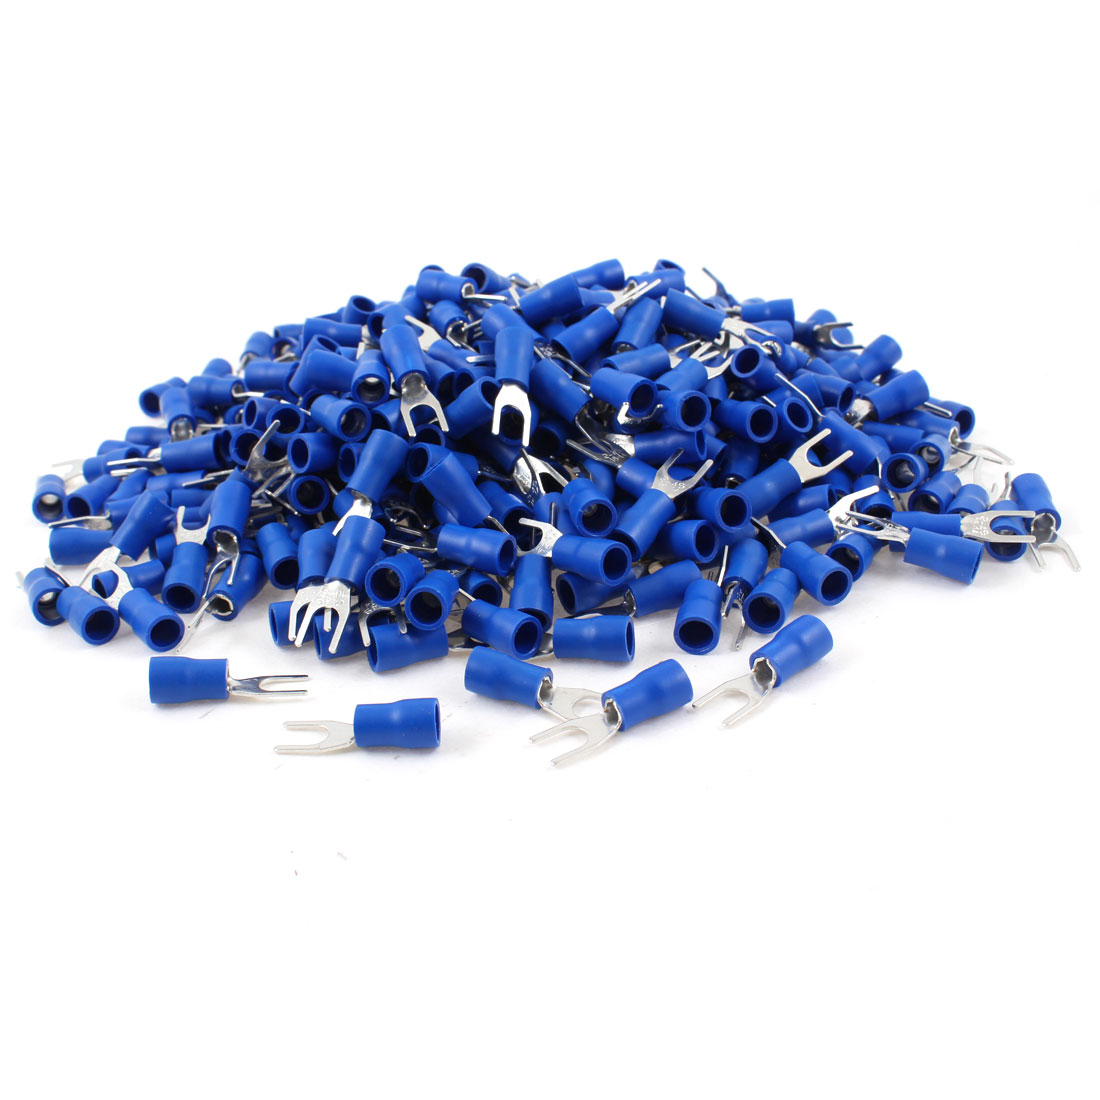 1000 Pcs Blue Pre Insulated Fork Terminals SV2-4S for AWG 16-14 Wire #8 Stud